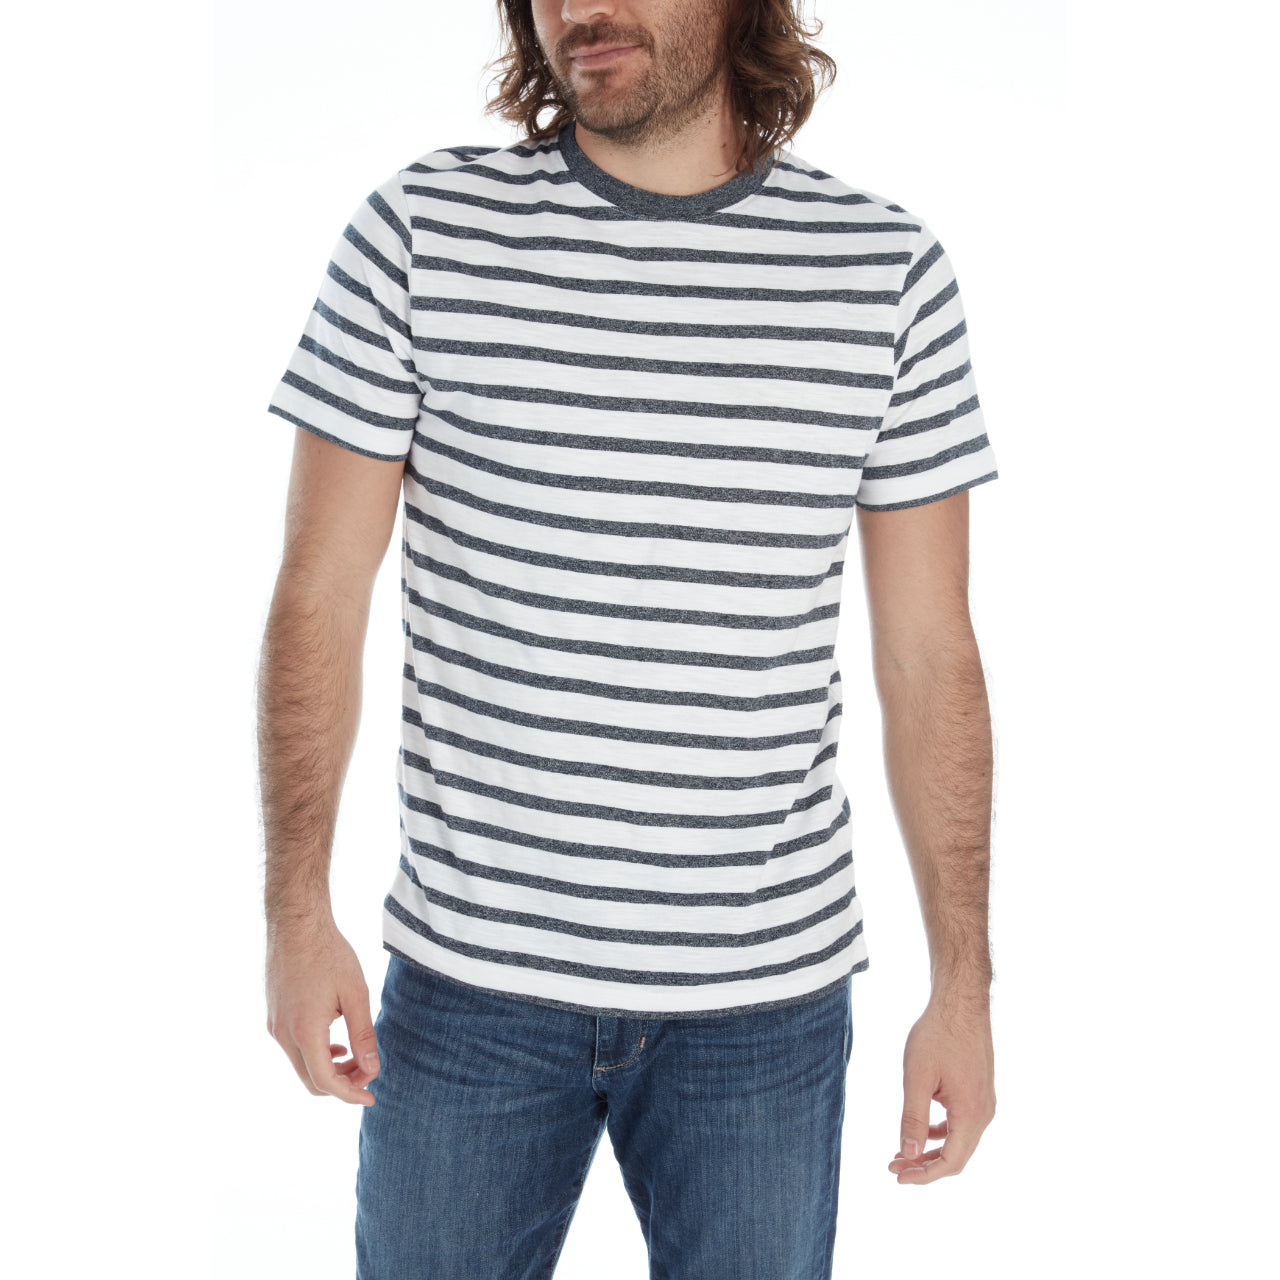 Lewis Striped Tee